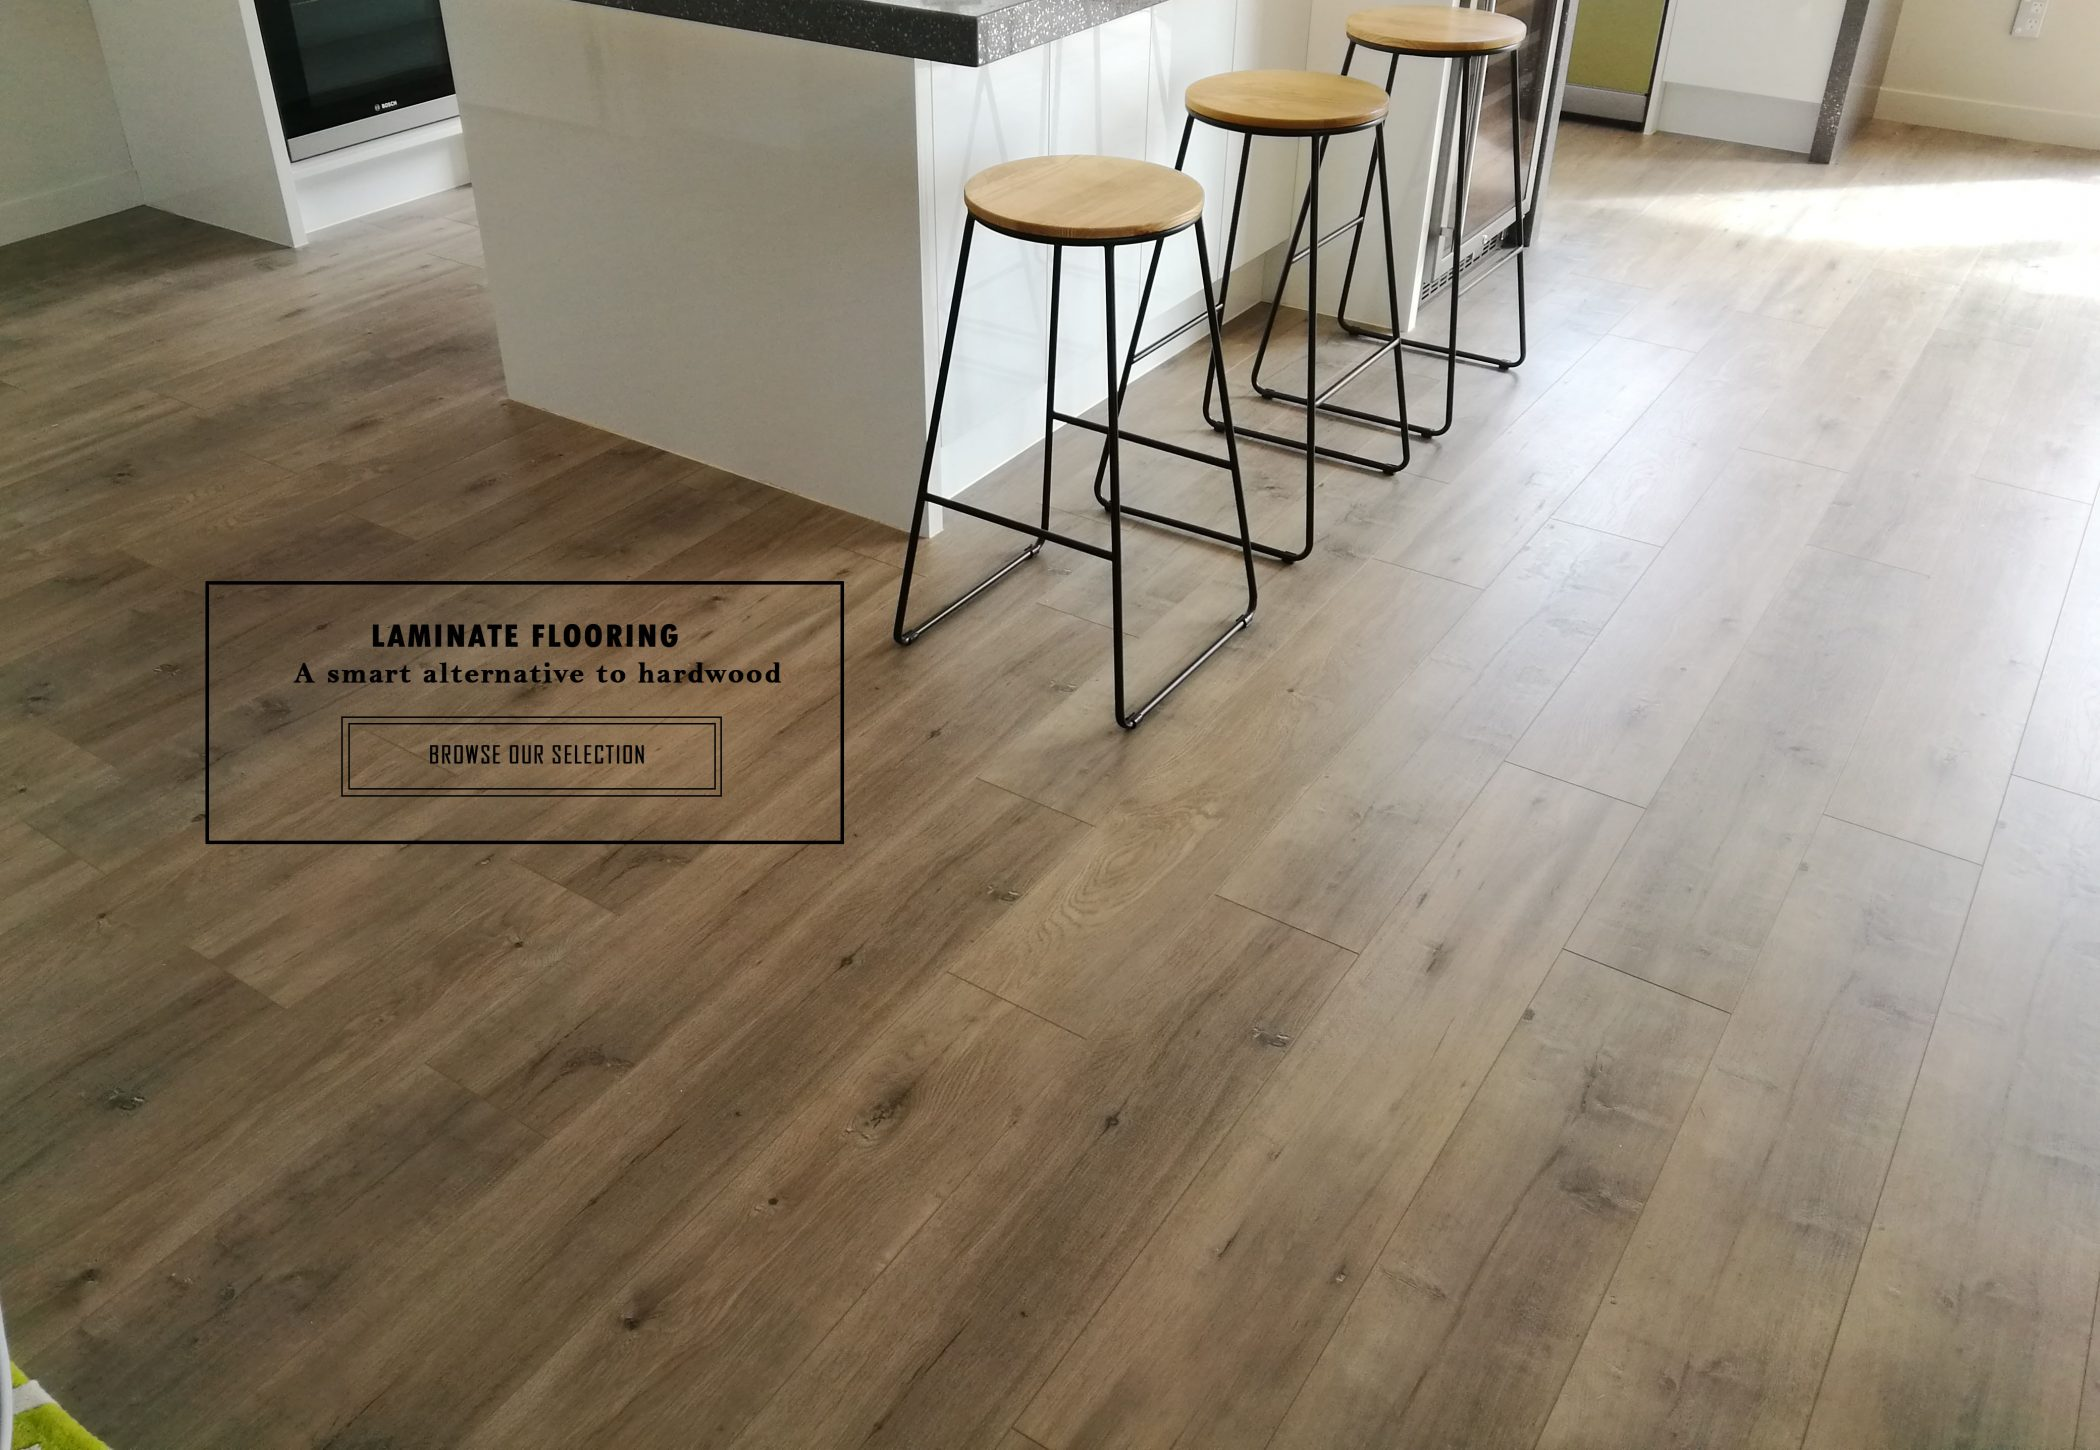 A smart alternative to hardwood